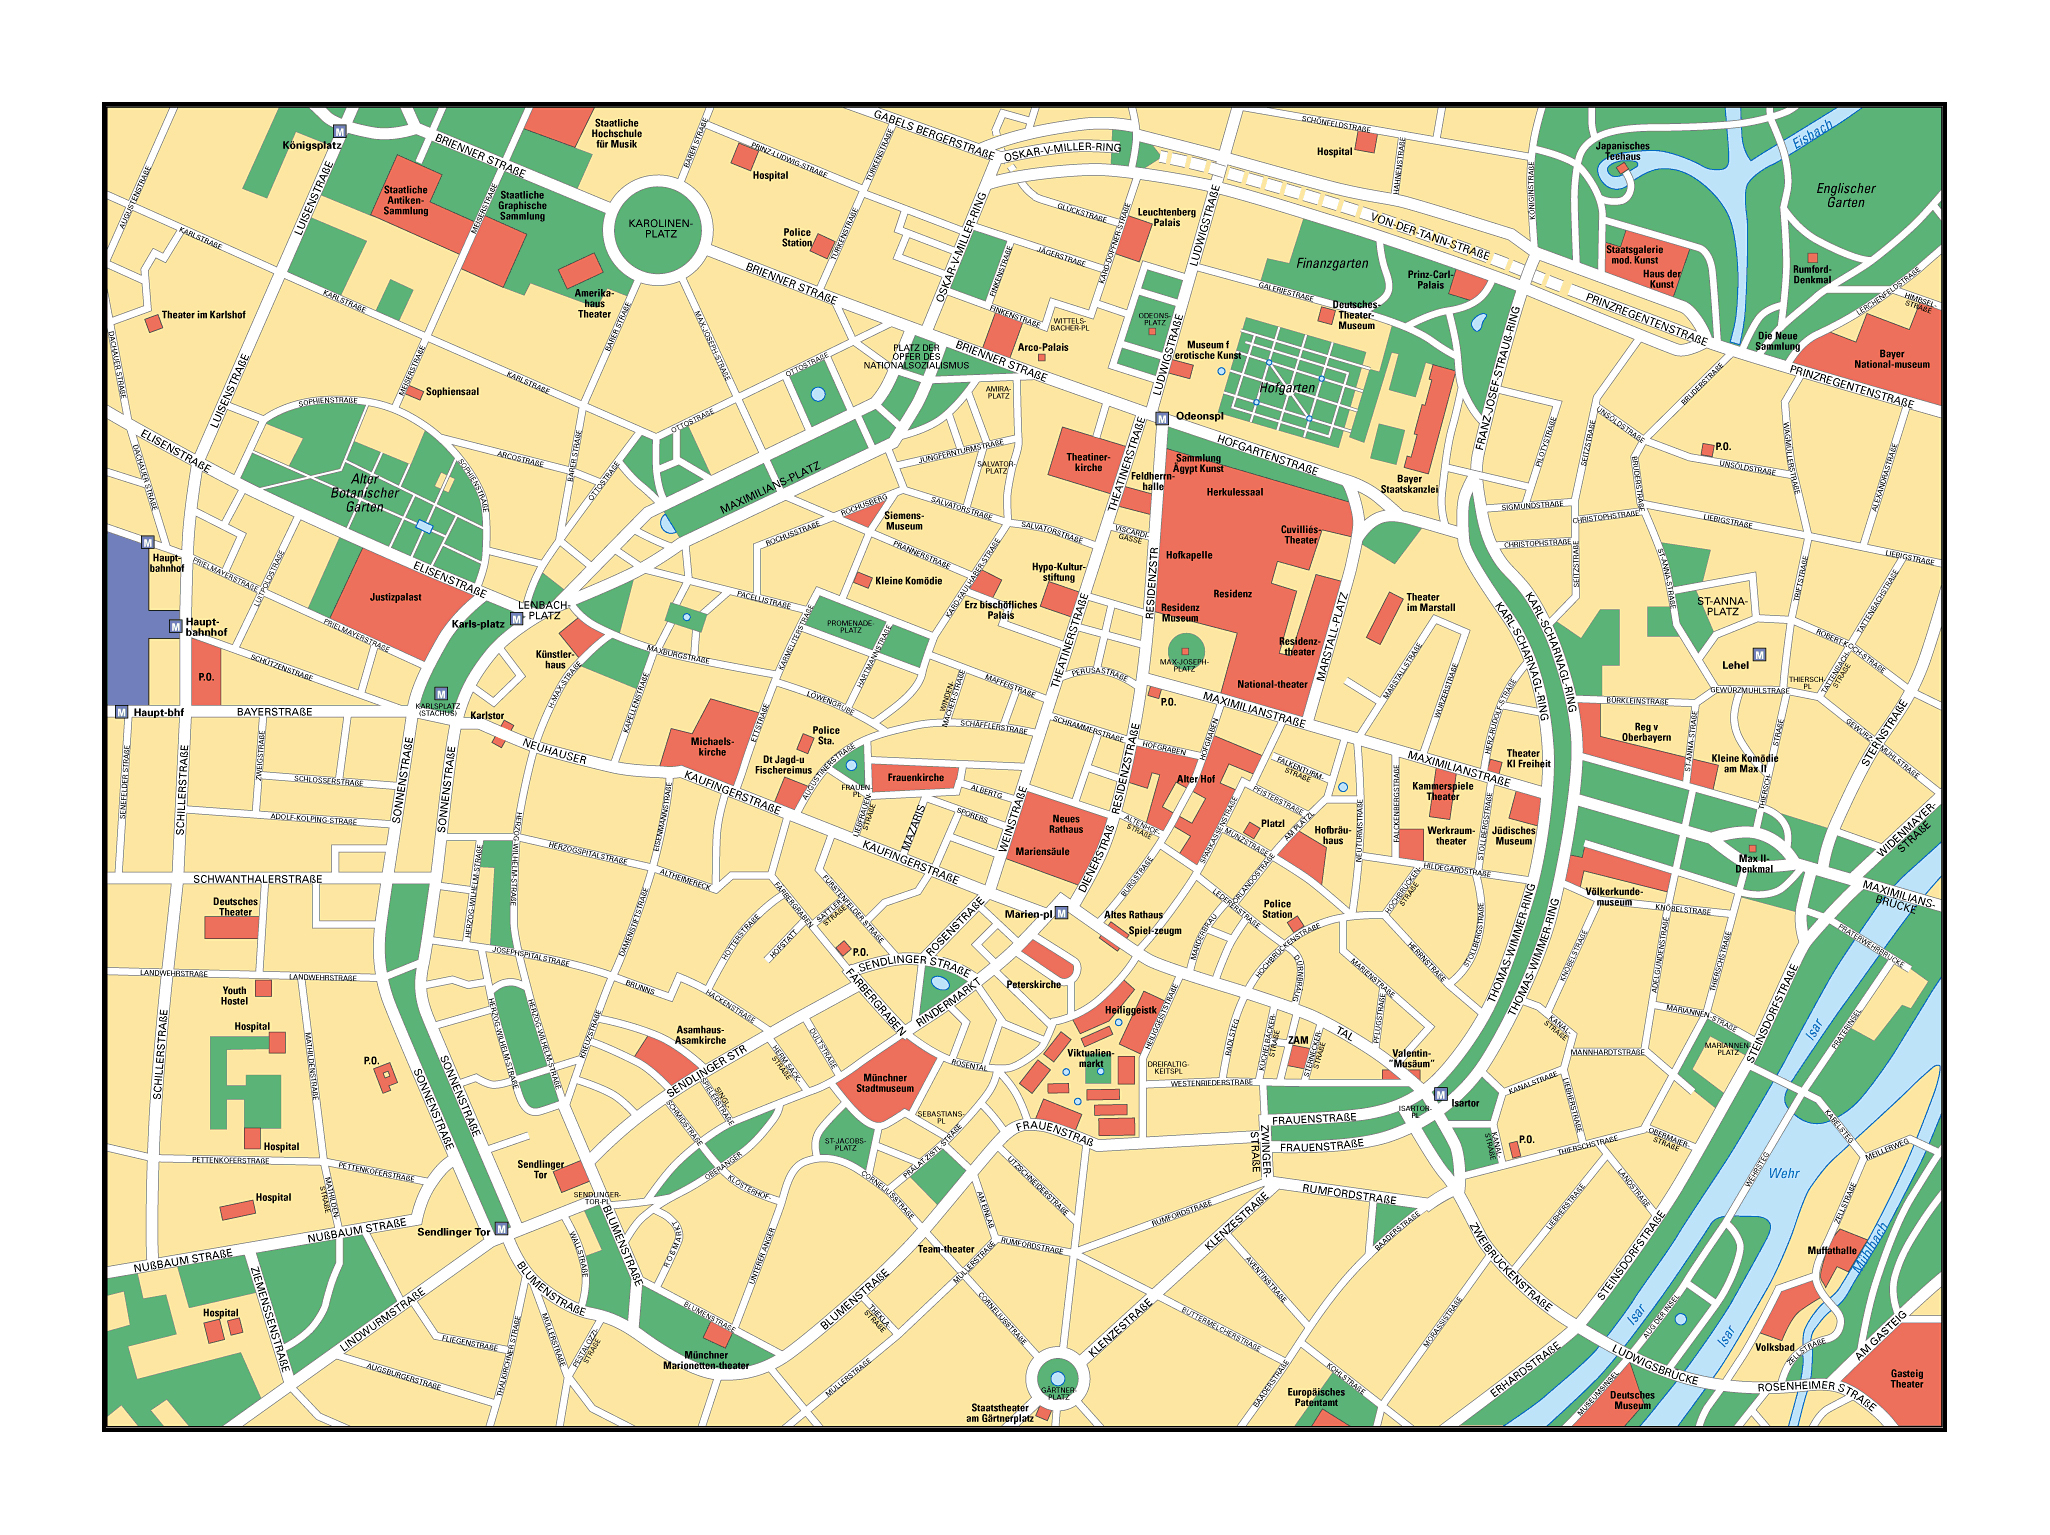 Large Street Map Of Central Part Of Munich City Munich Germany